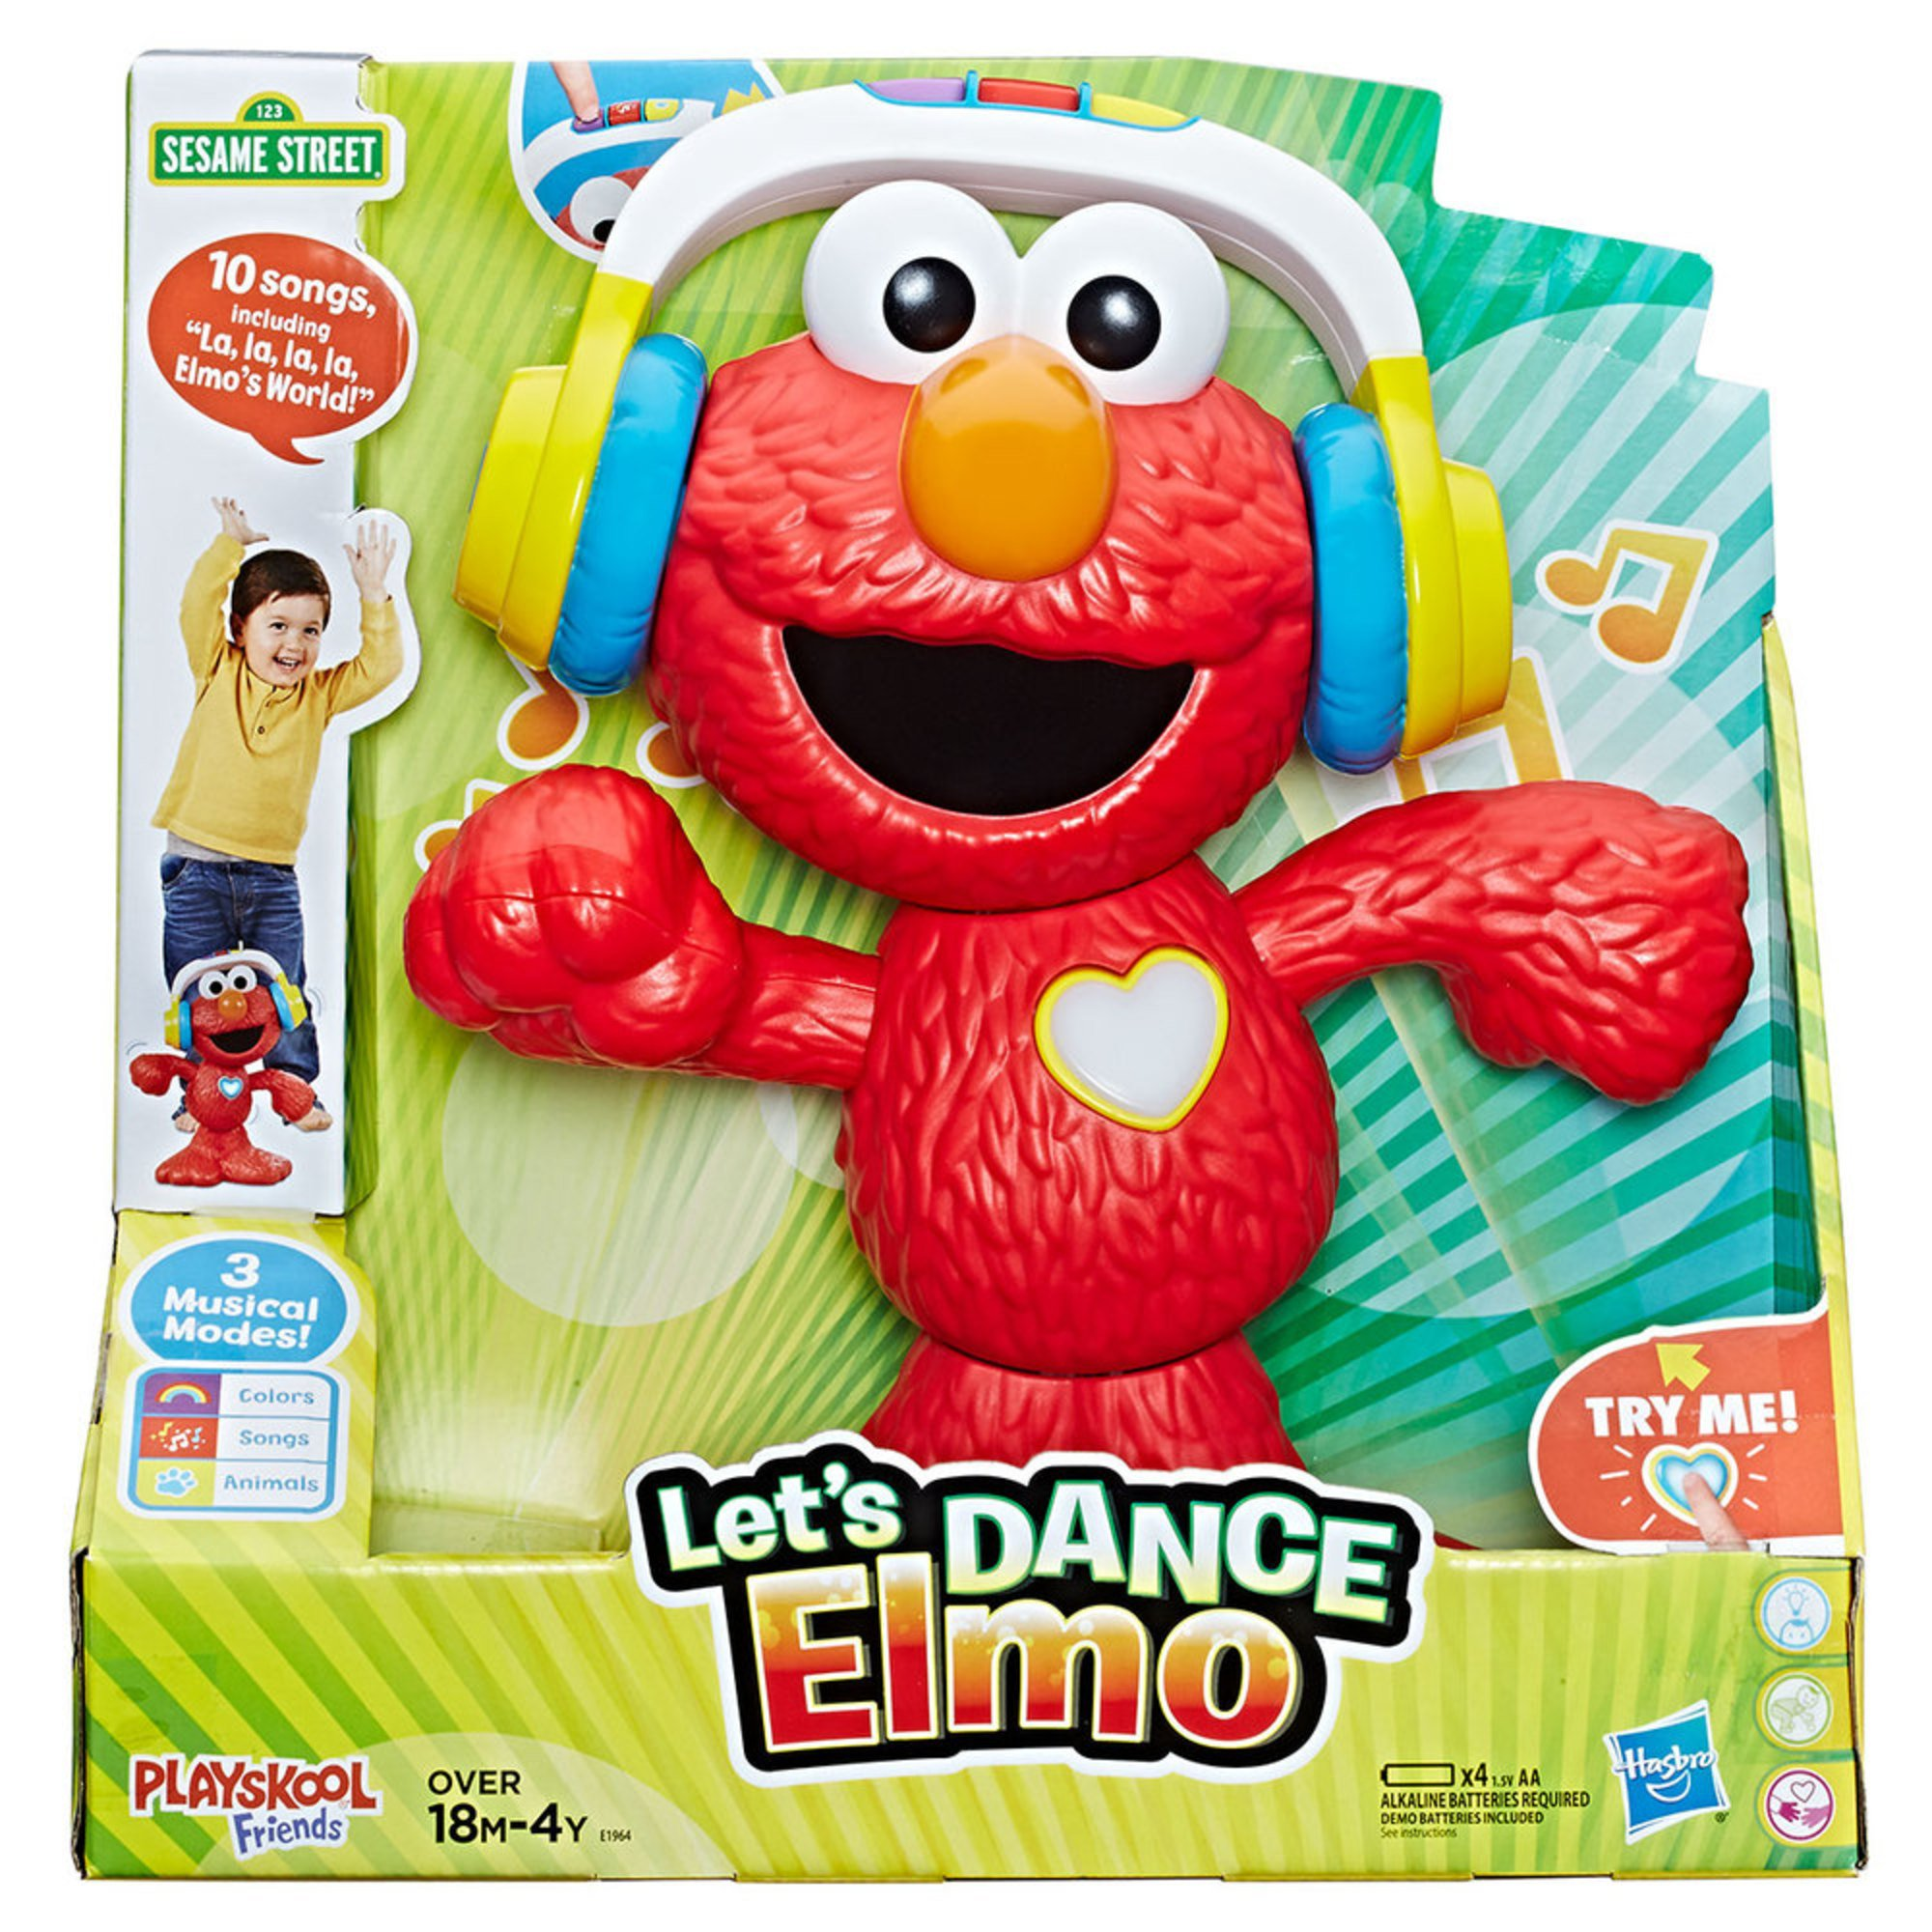 Sesame Street Lets Dance Elmo Early Learning Toys Baby Kids